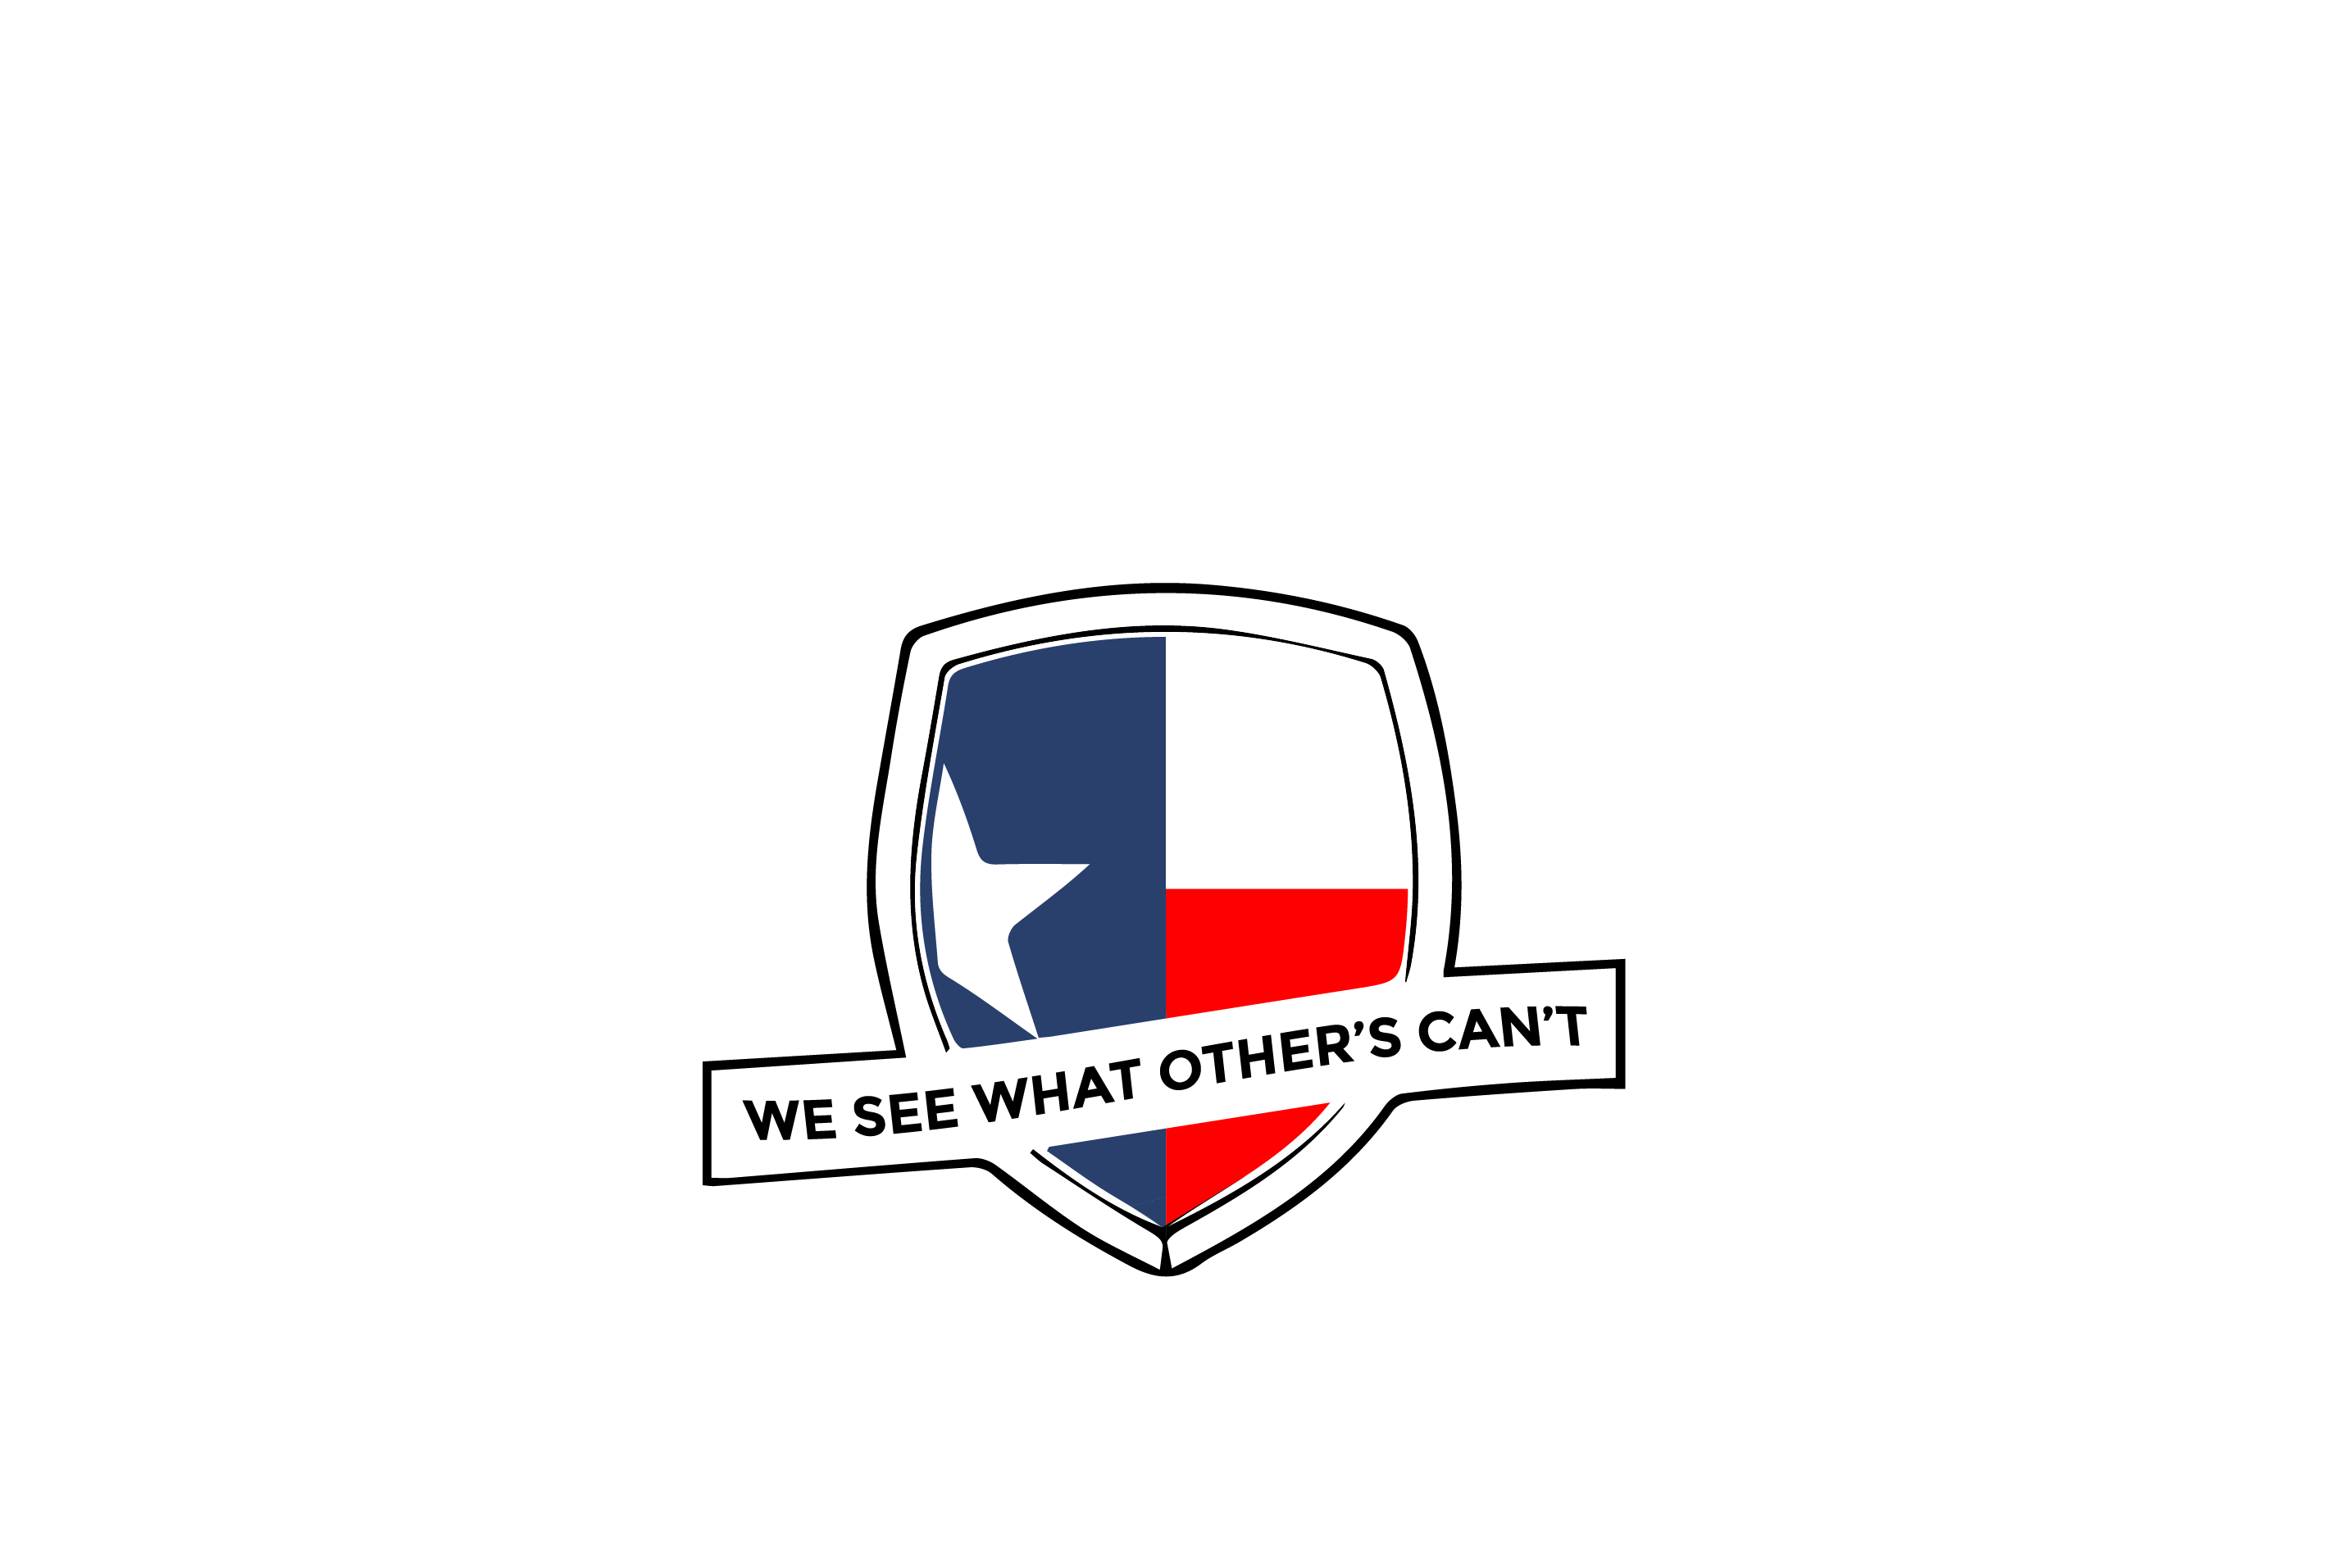 Level Up Home Inspections